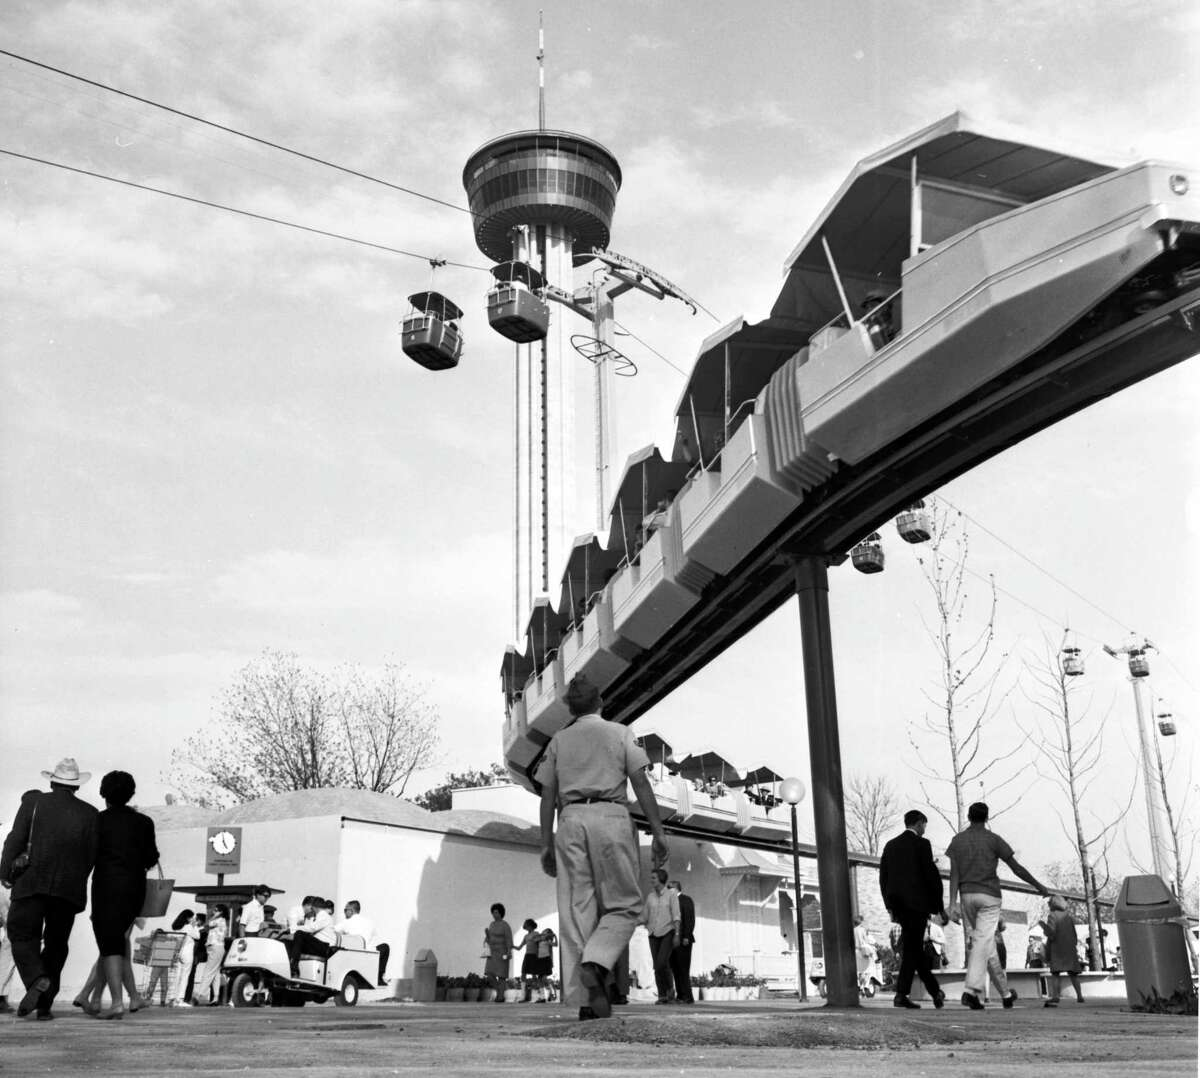 """The Tower of Americas is shown behind the monorail during HemisFair 1968. A celebrity competition called """"the world's tallest milking contest"""" was held at the top of the 575-foot tower, according to a news report of the time."""